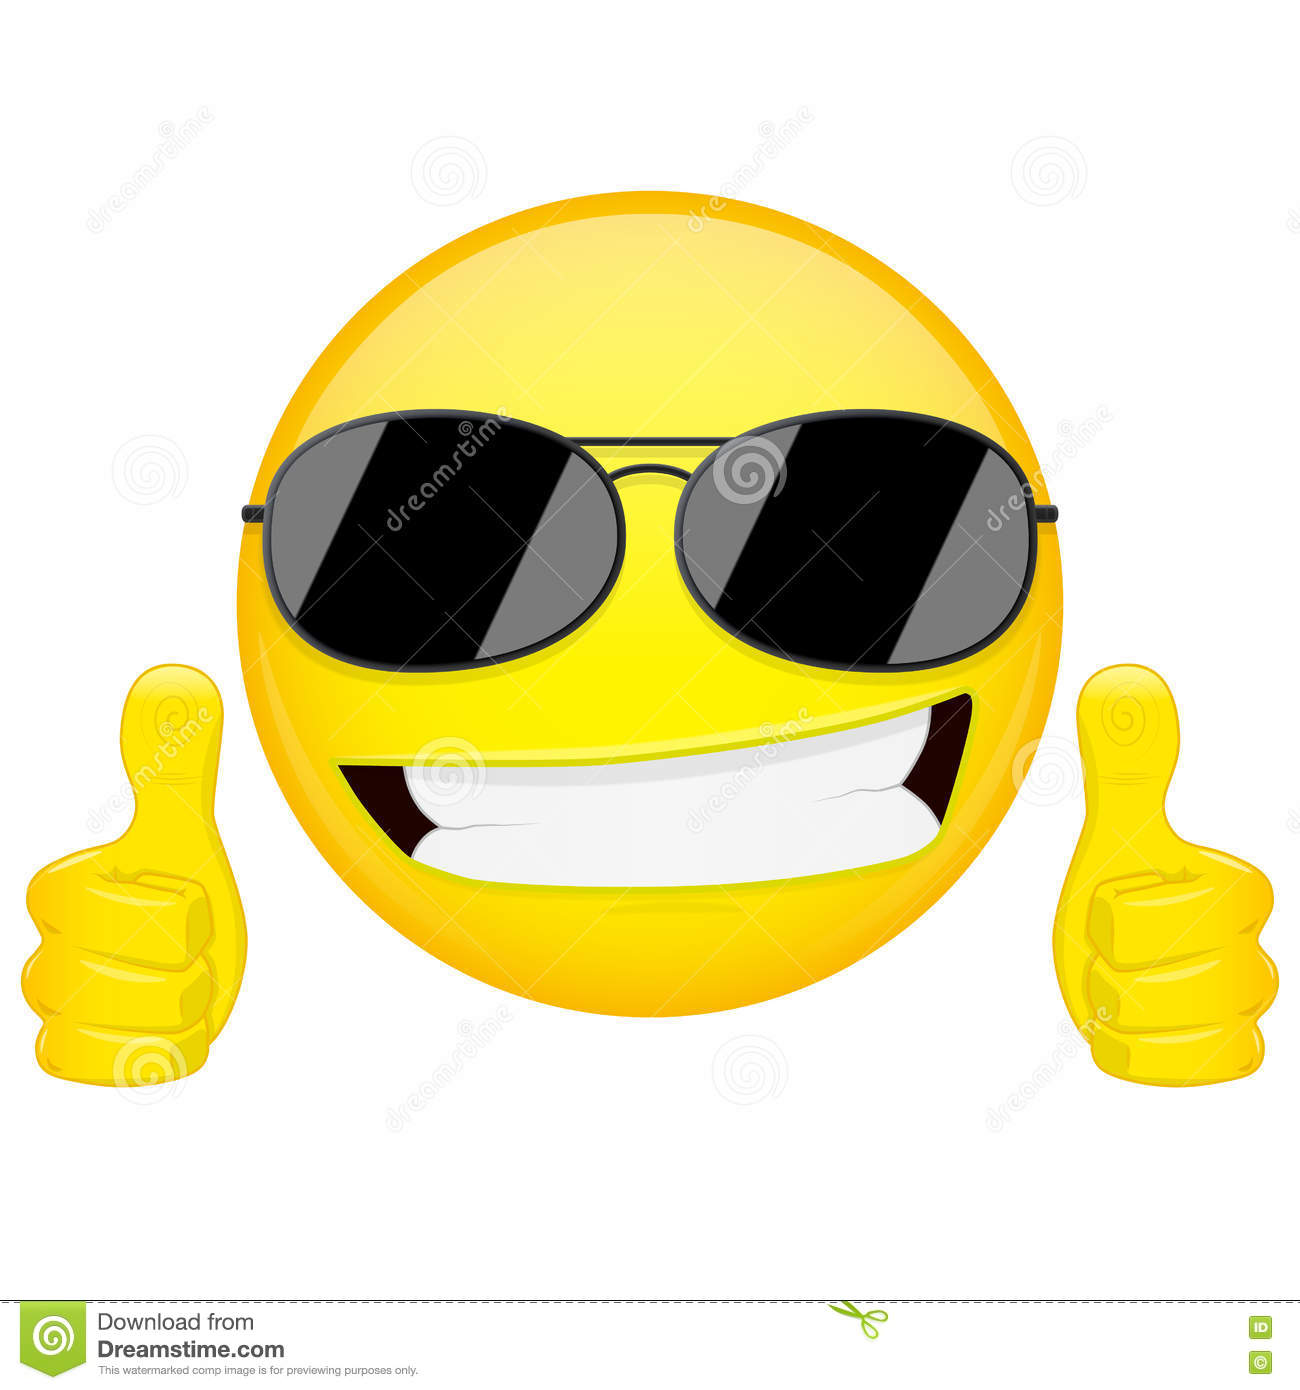 Thumbs Up Emoticon Emoji Stock Vector - Image: 57859992